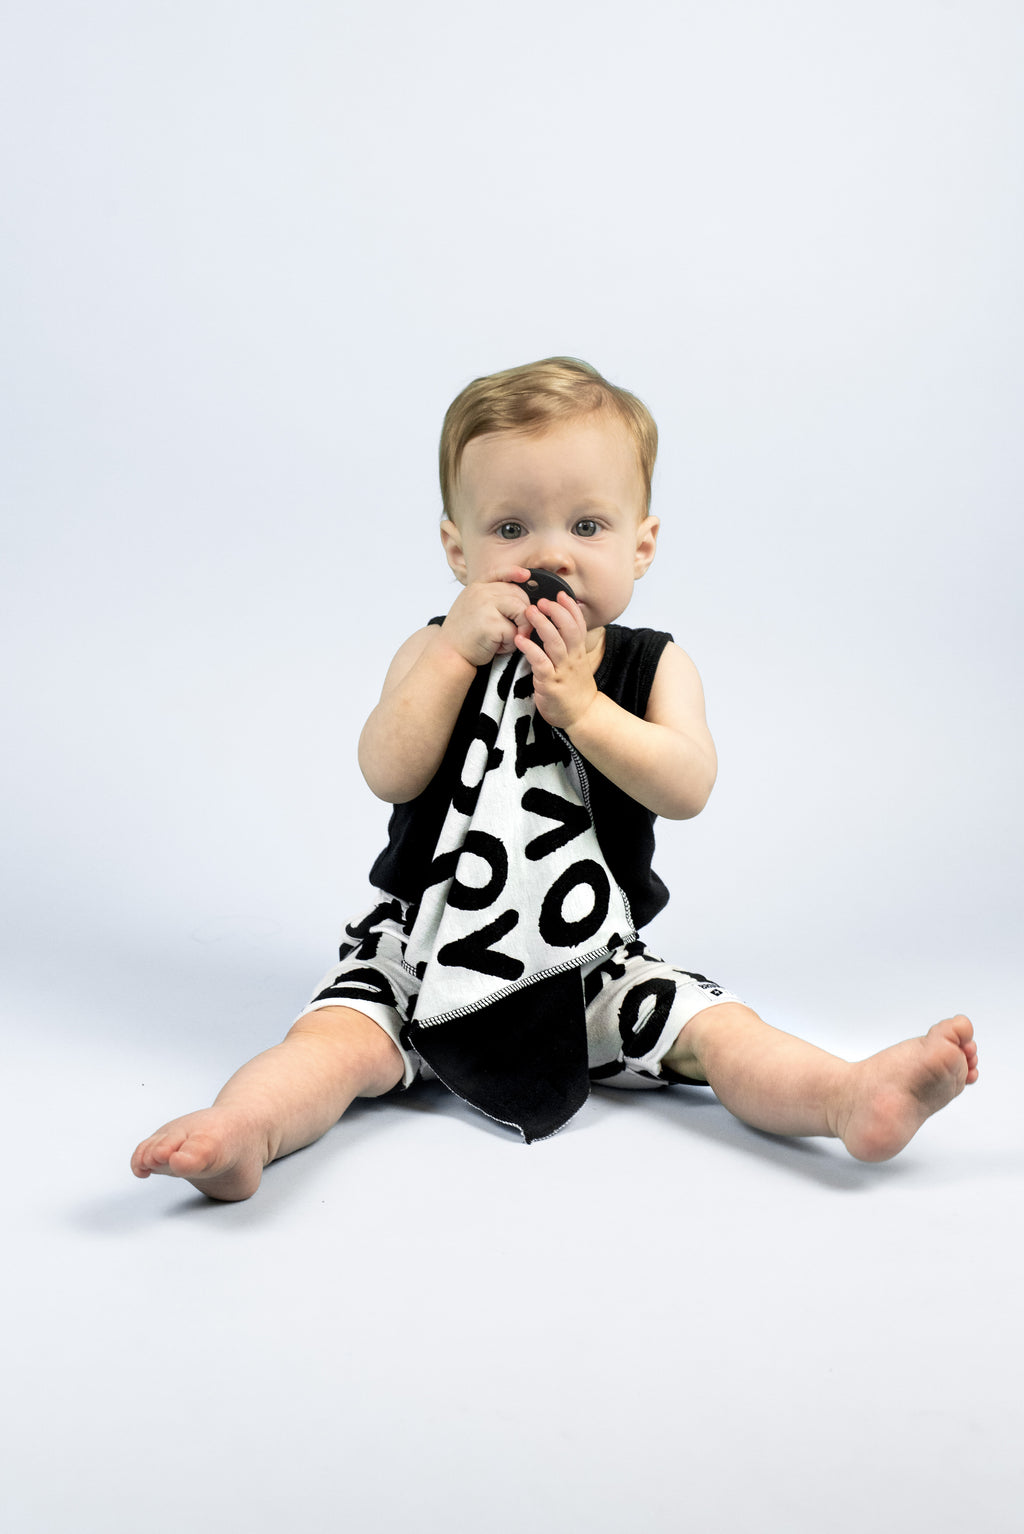 Brooklyn + Fifth Monochrome Loveys. Introducing our Monochrome Collection, a gender neutral collection of Loveys featuring bold, fun Monochrome prints. Not only are they on trend with the minimalist, modern look, but strong black and white patterns can help babies to develop their ability to focus and concentrate.